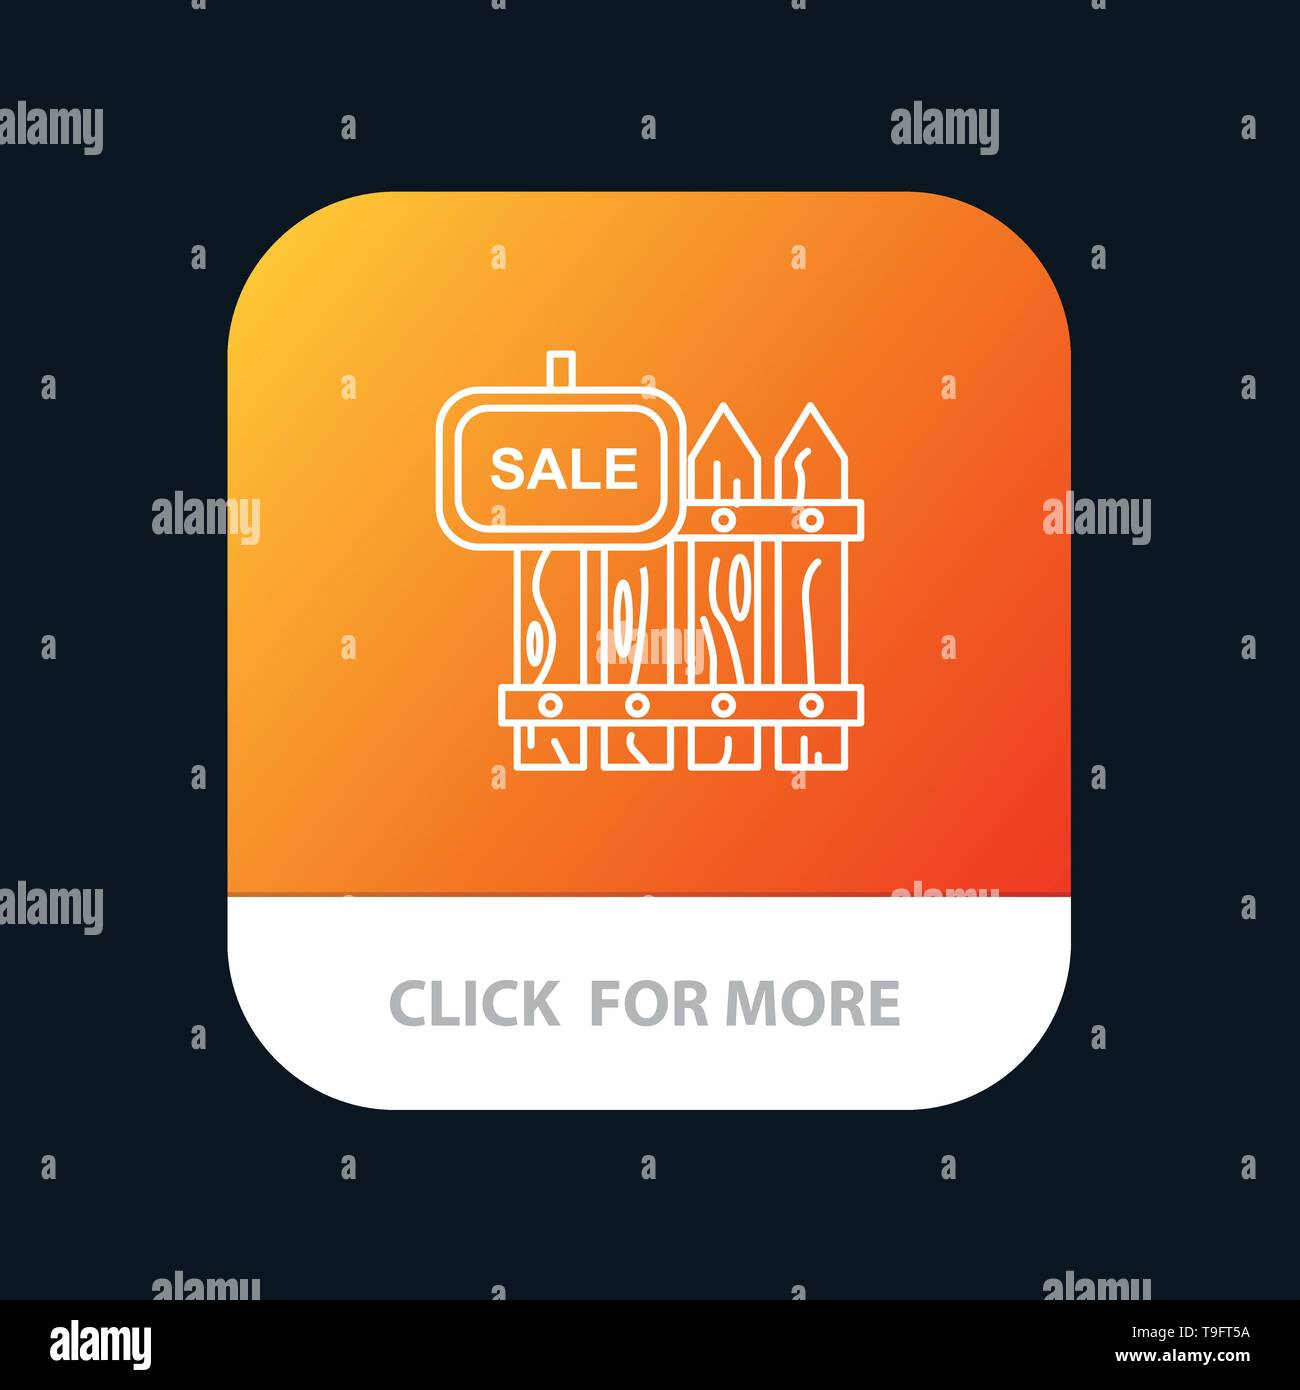 Fence, Wood, Realty, Sale, Garden, House Mobile App Button. Android and IOS Line Version - Stock Image